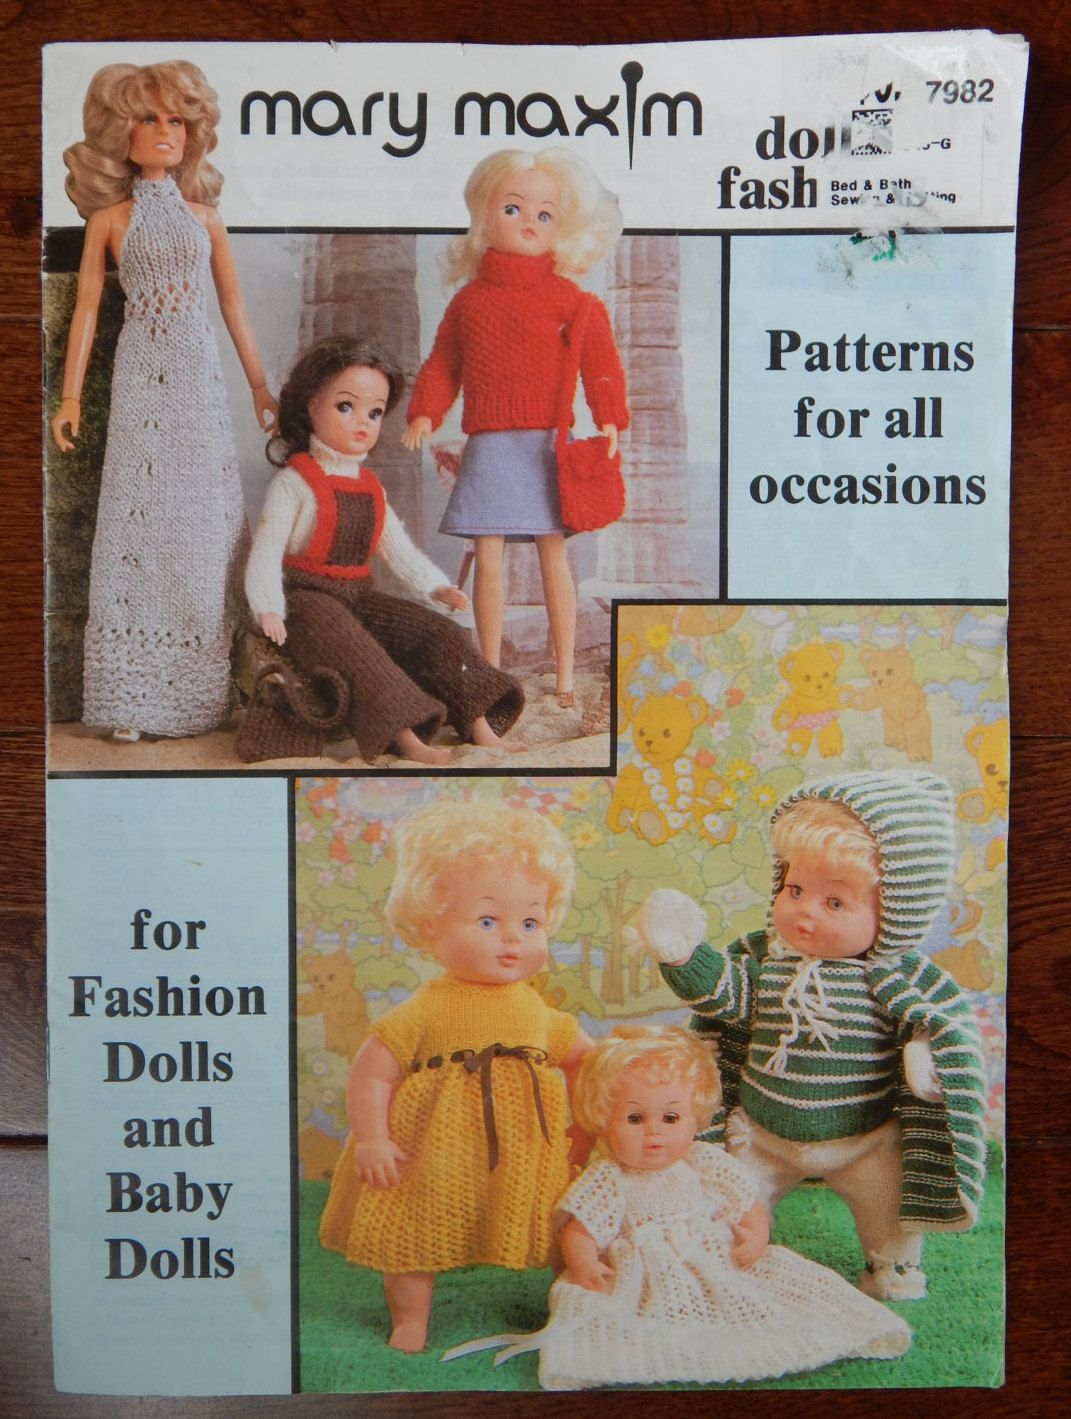 10-20   Inch Doll Vintage Patons  Doll Knitting Pattern